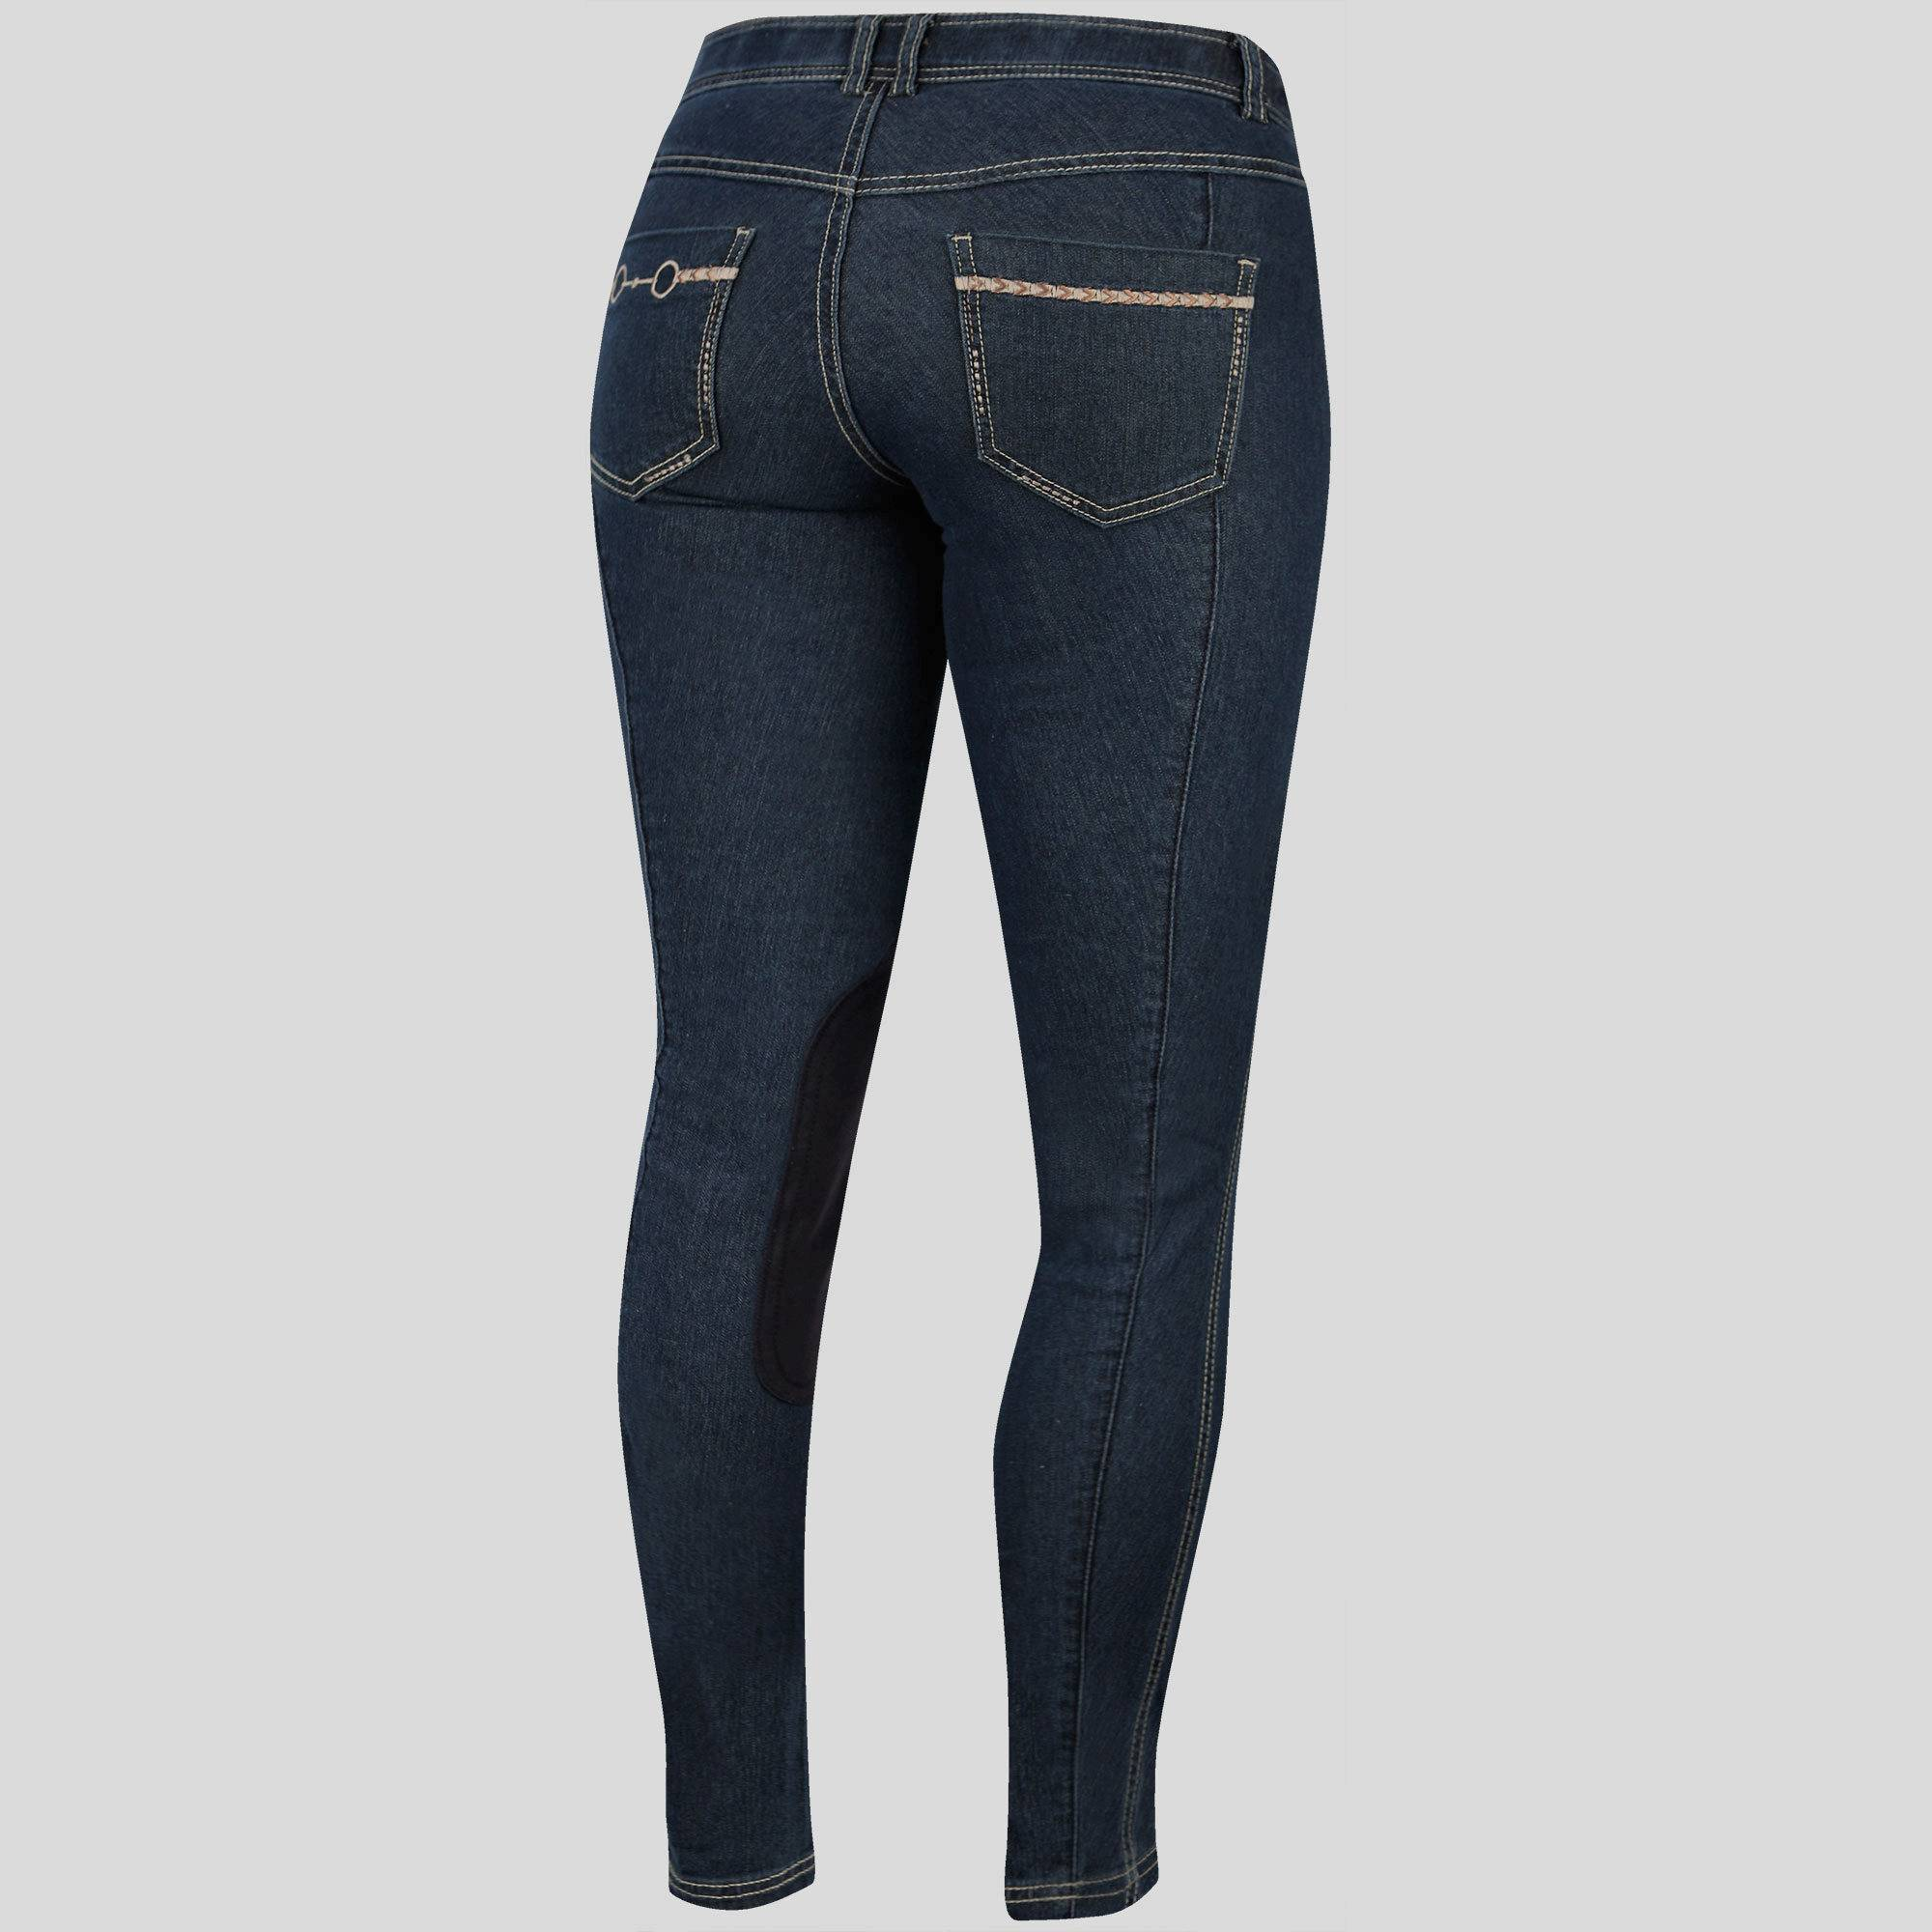 Irideon Bit & Reins Pocket Denim Breeches - Ladies